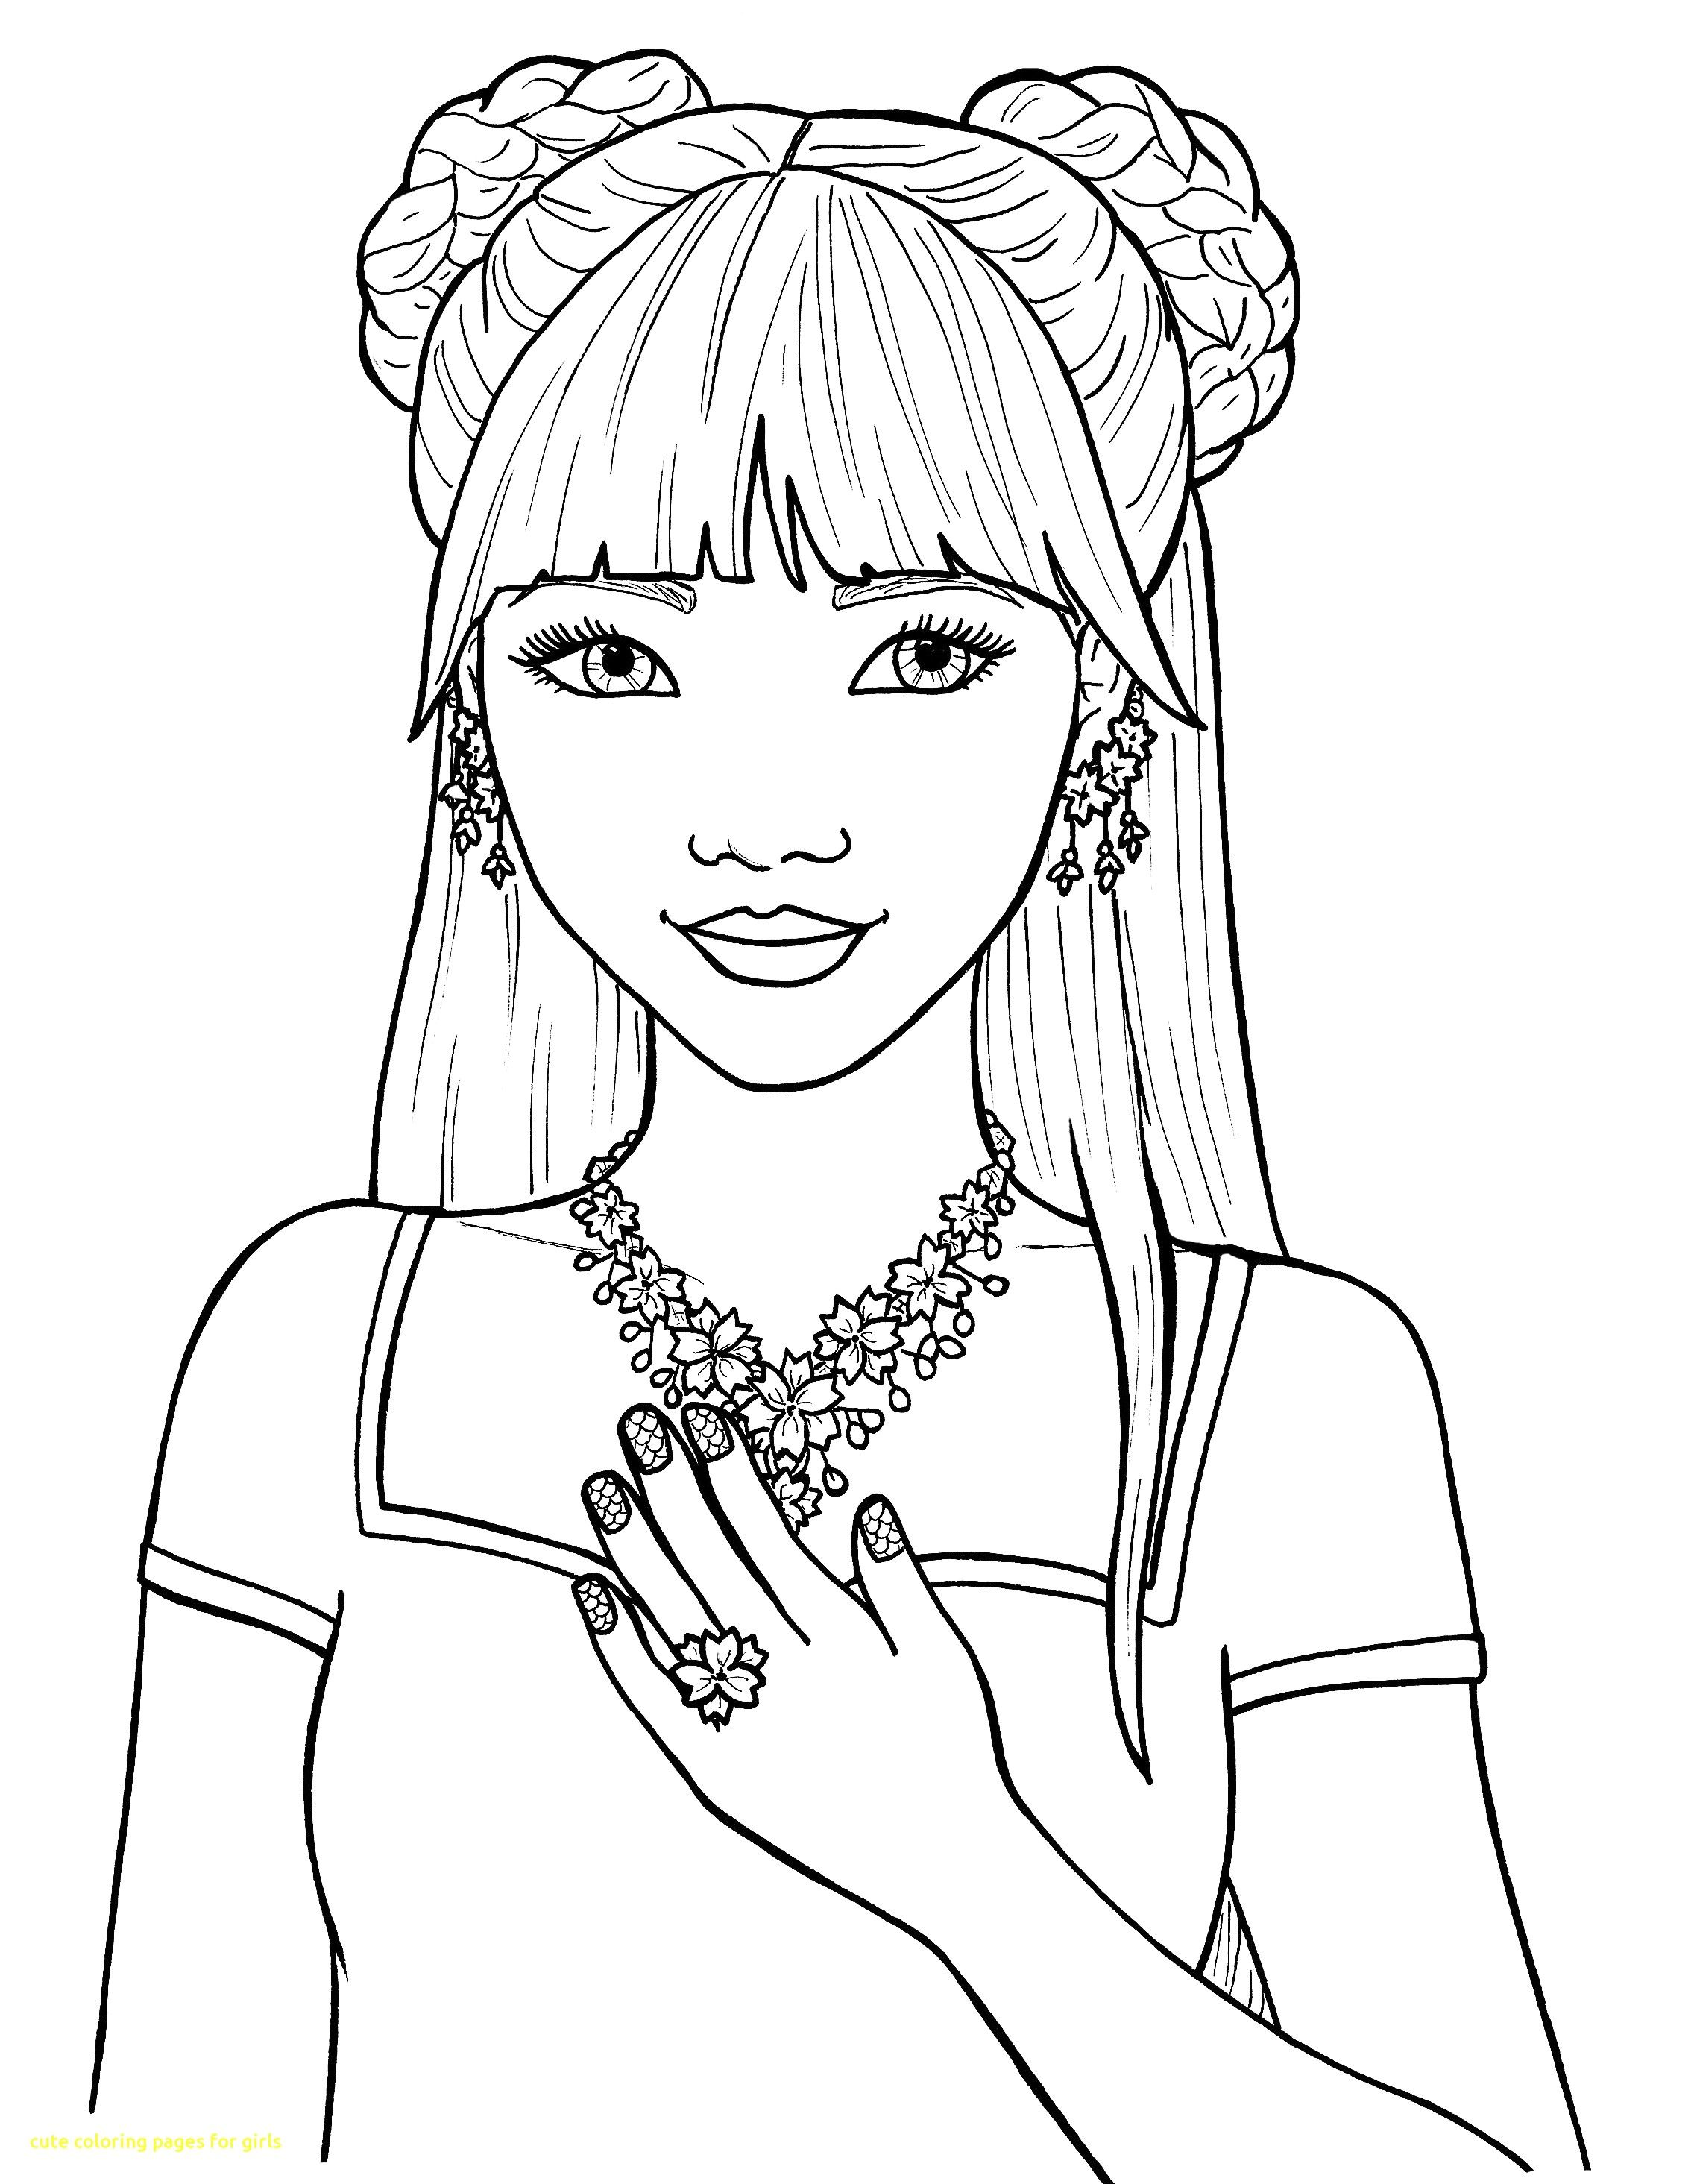 Pretty Girl Coloring Pages For Teenage Girl : pretty, coloring, pages, teenage, Coloring, Pages, Girls, Inside, Teens, Teenage, People, Pages,, Girls,